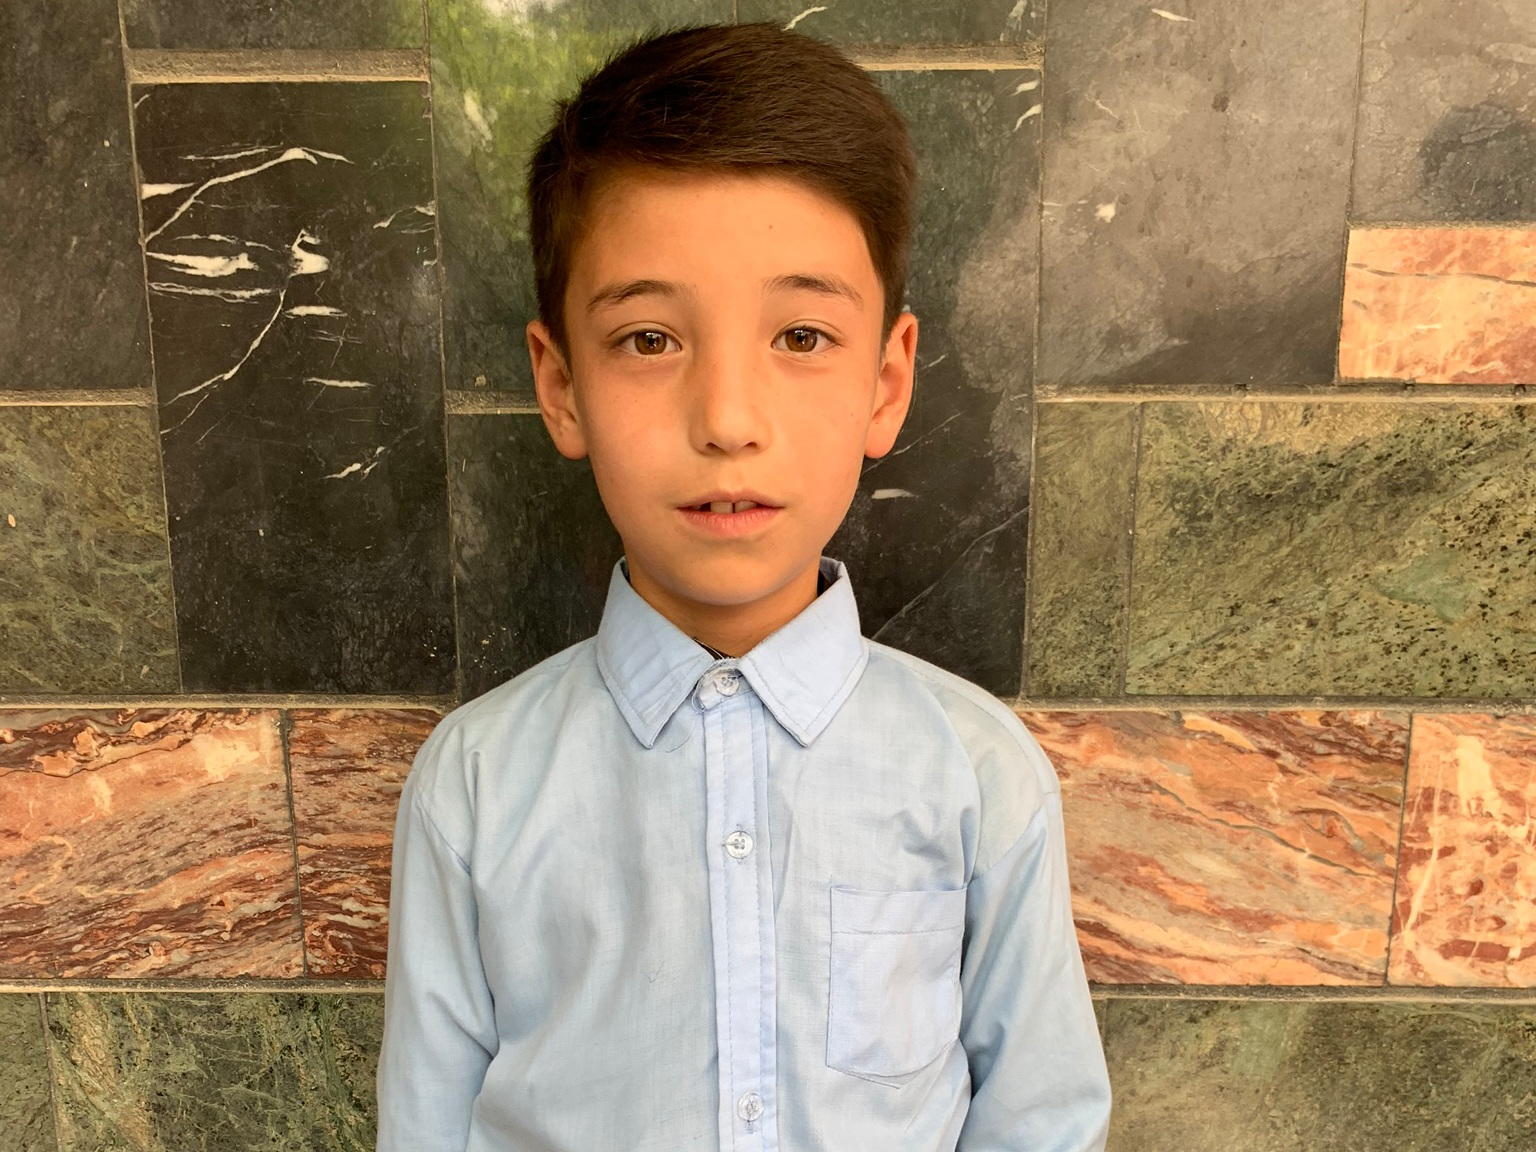 Mustafa, Age 8 - Mustafa has 5 siblings. His mother is unemployed and his father is a policeman.BE MUSTAFA'S PARTNER>